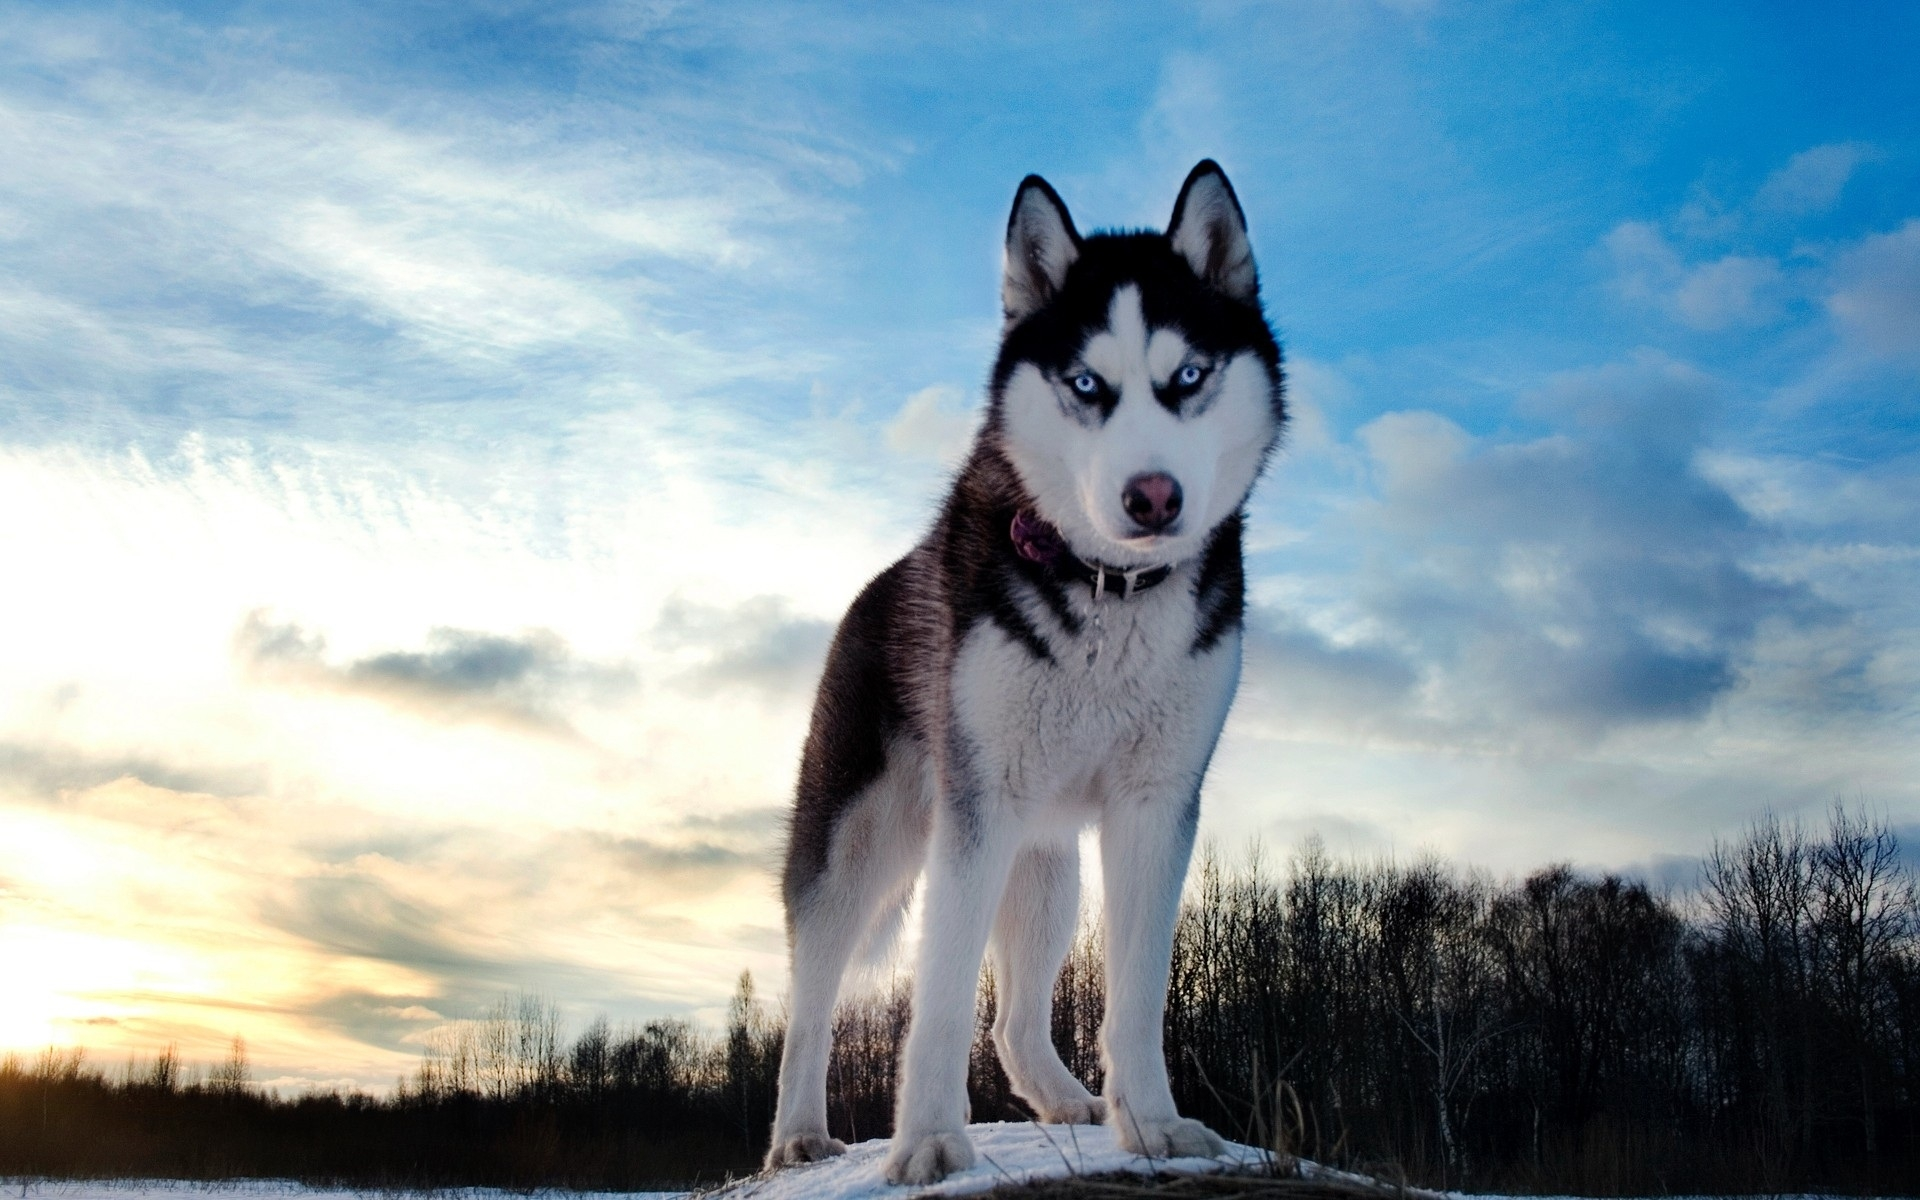 45358 download wallpaper Animals, Dogs screensavers and pictures for free